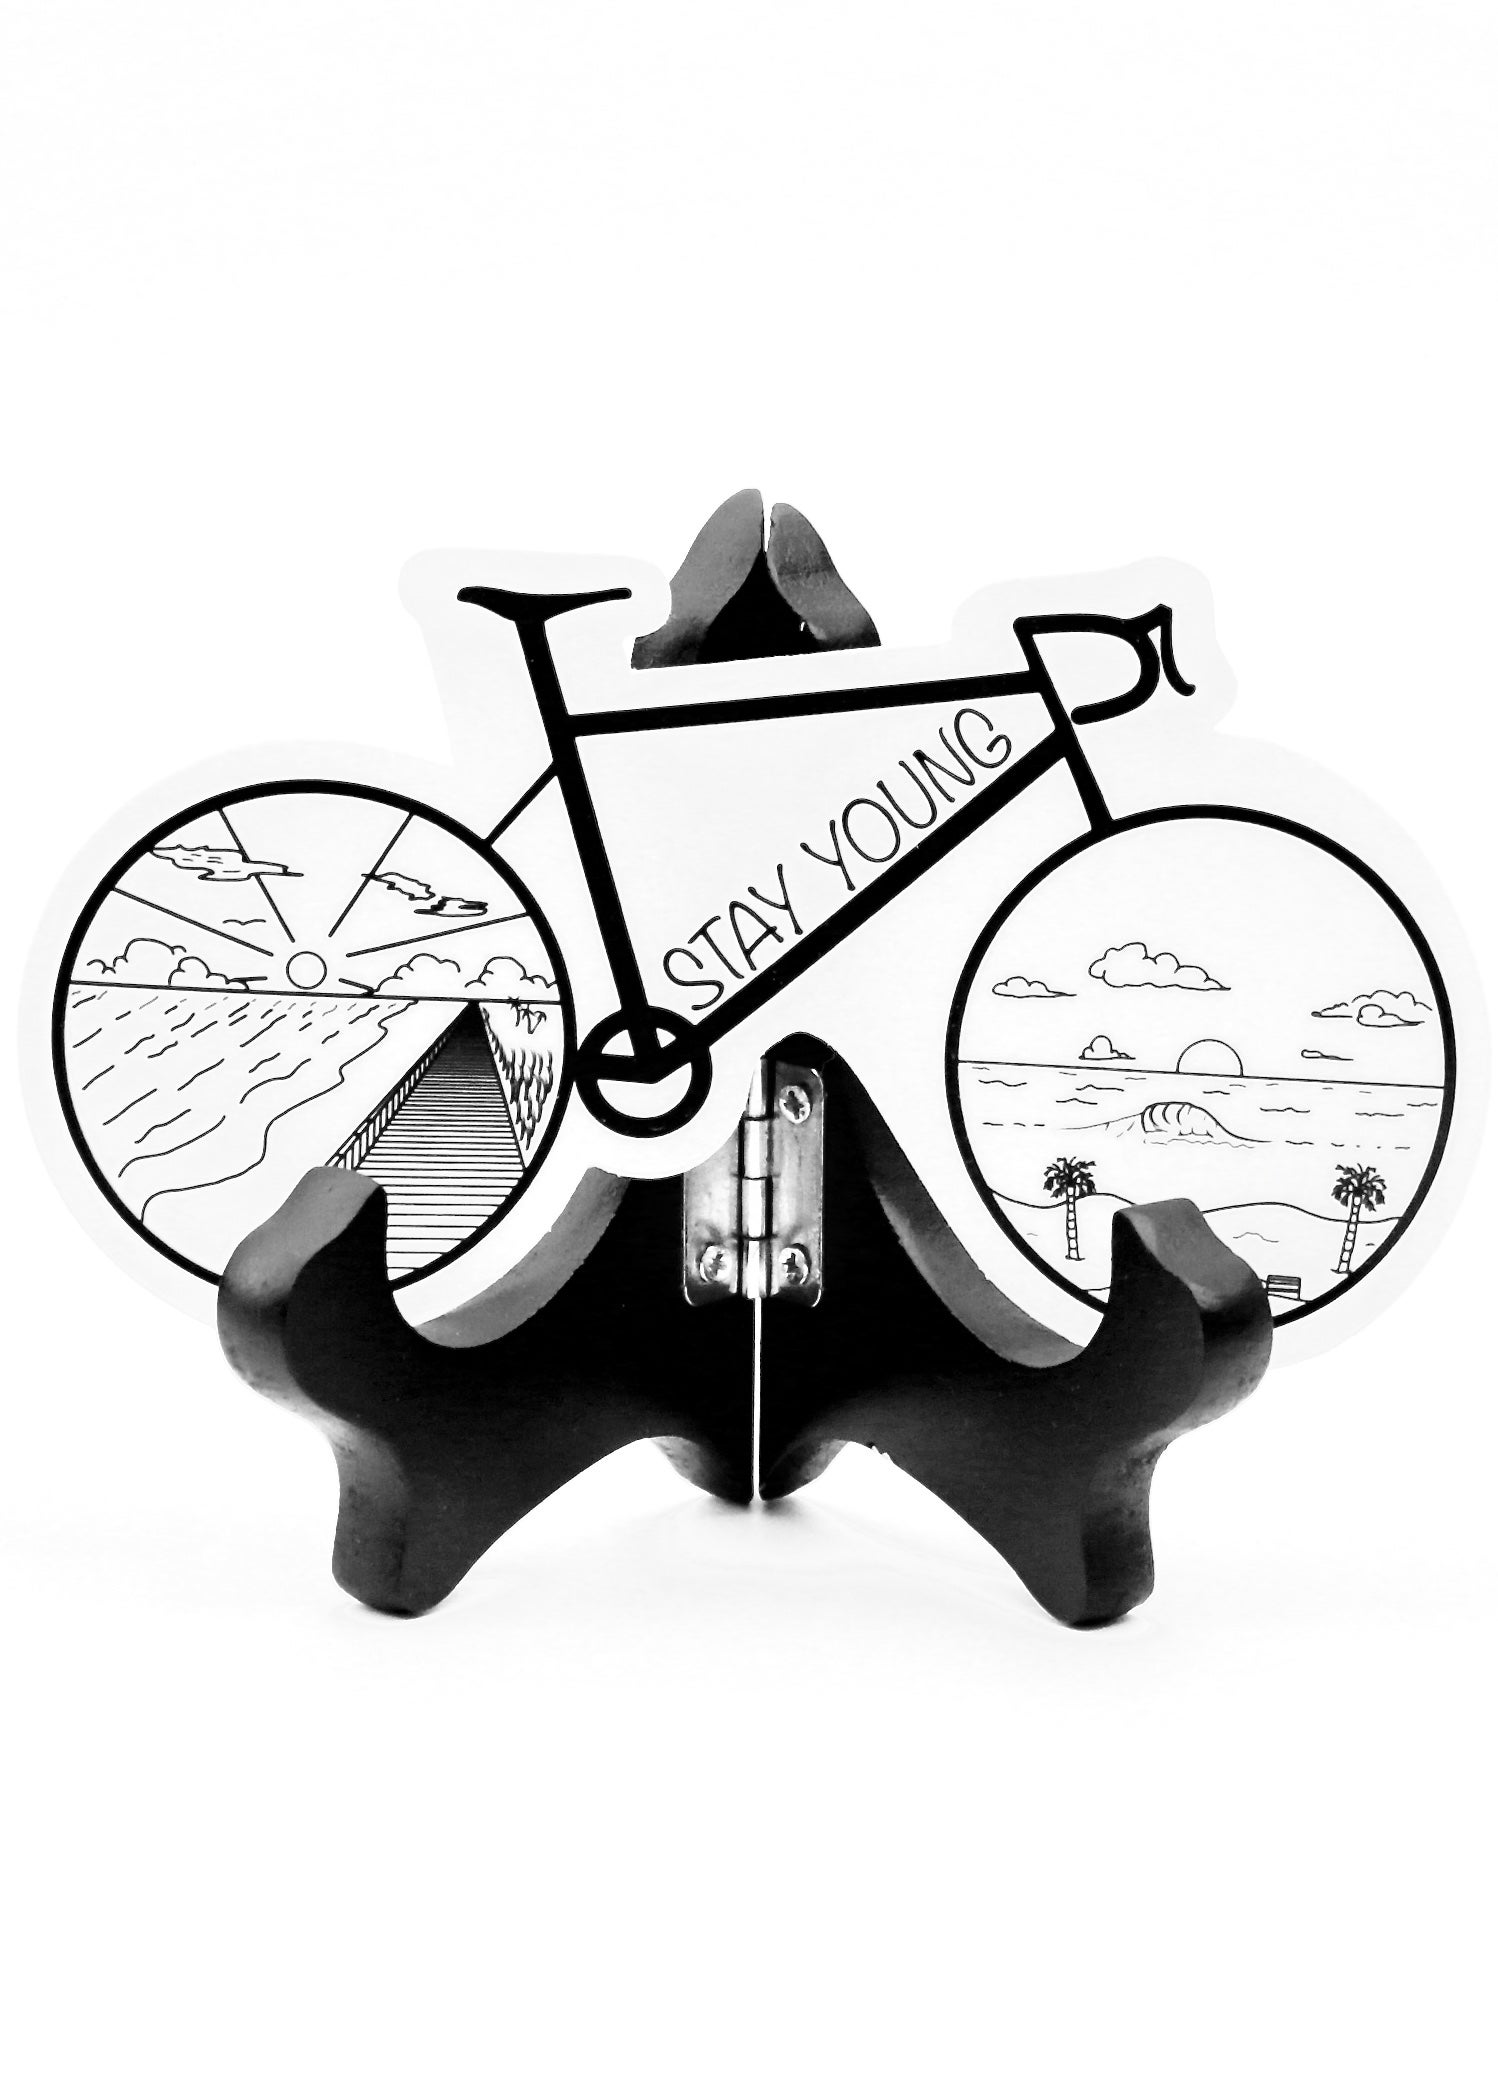 Image of Road Bike Sticker (Clear Background)